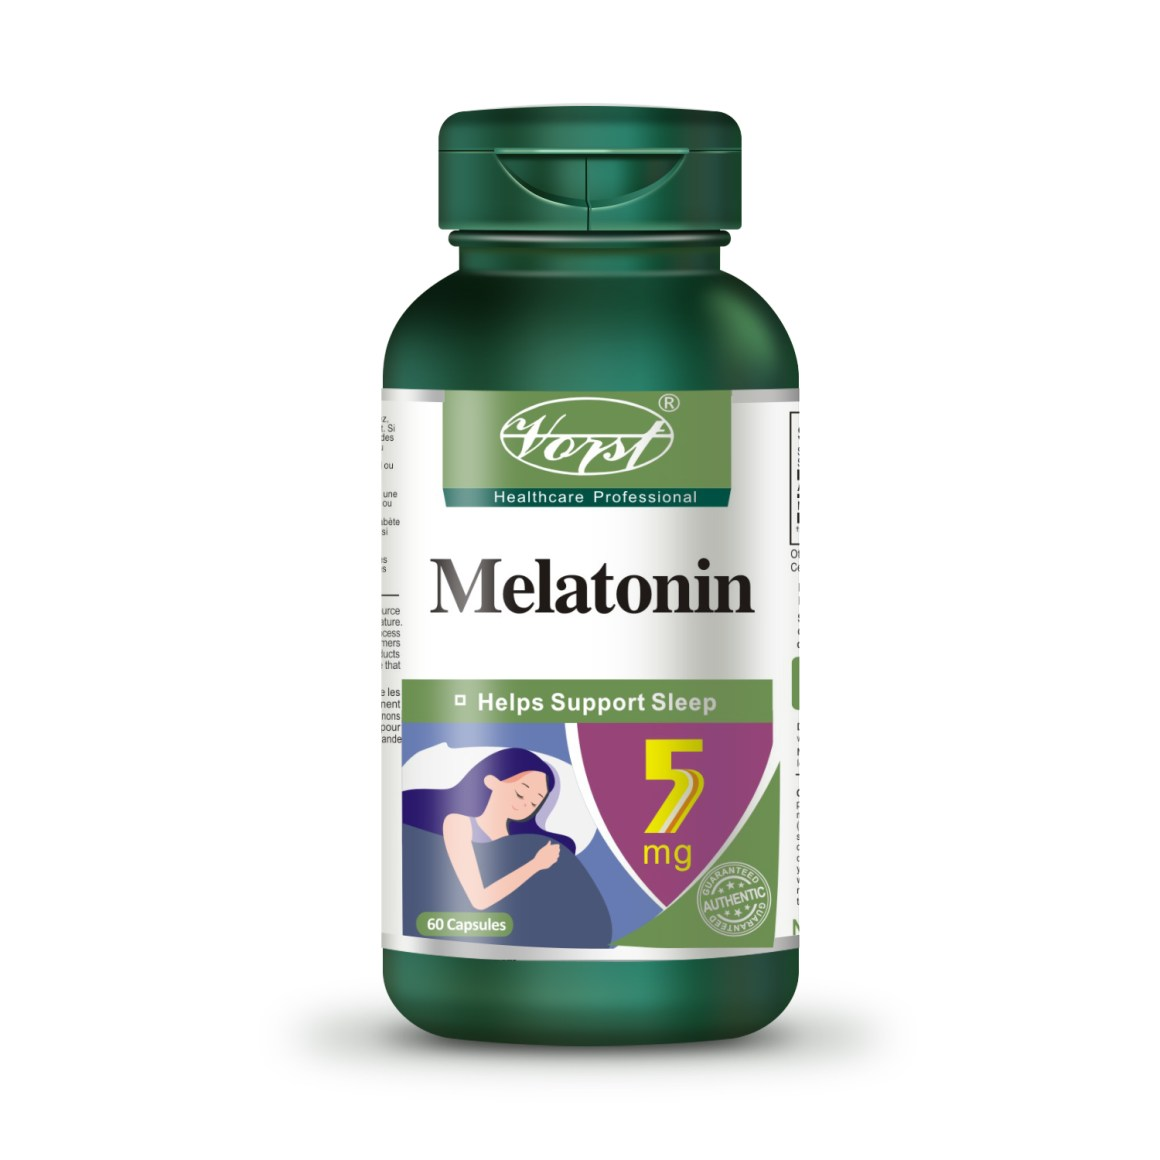 Melatonin 5mg 60 capsules bottle front